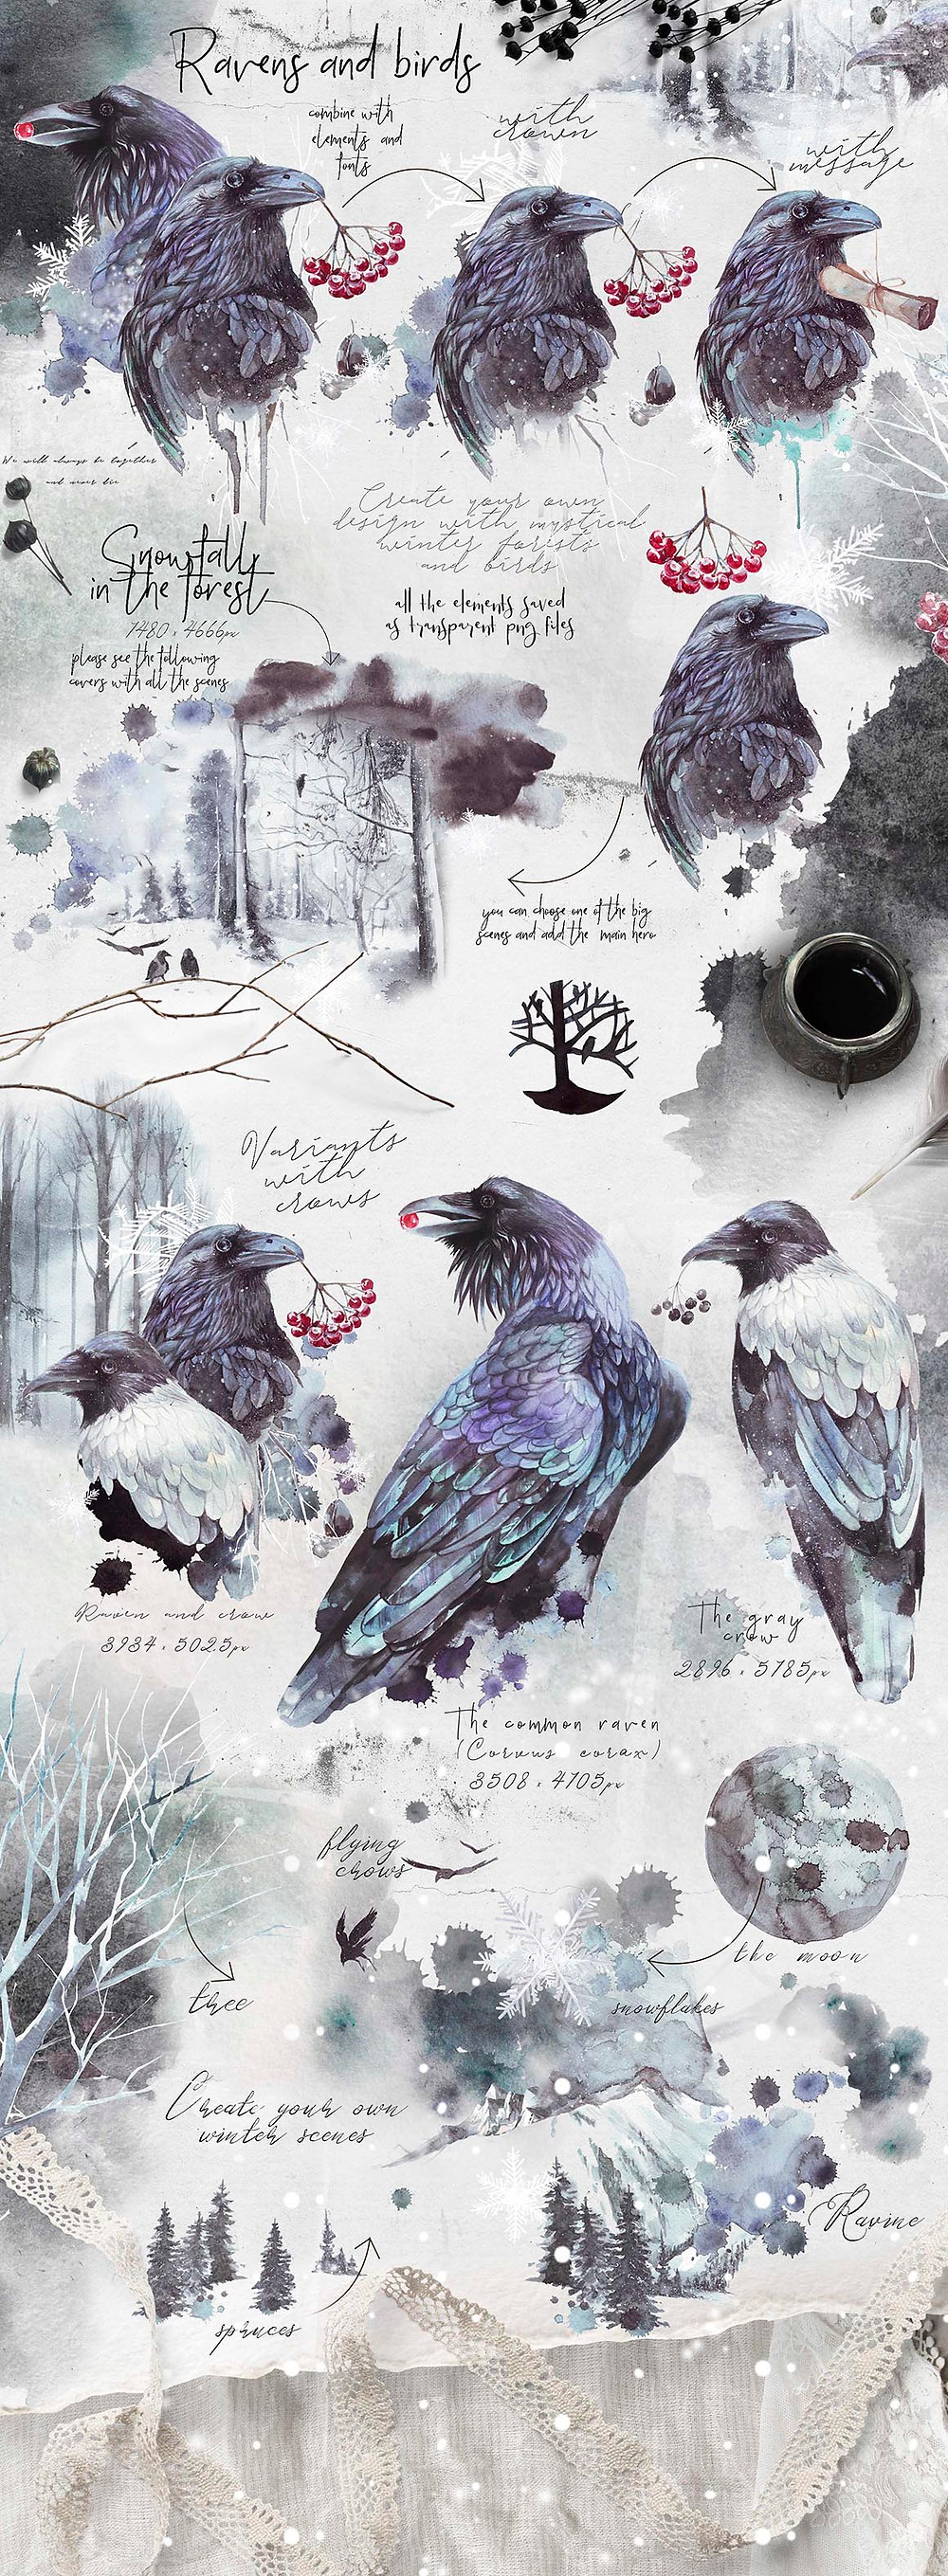 Ravens and crows watercolor